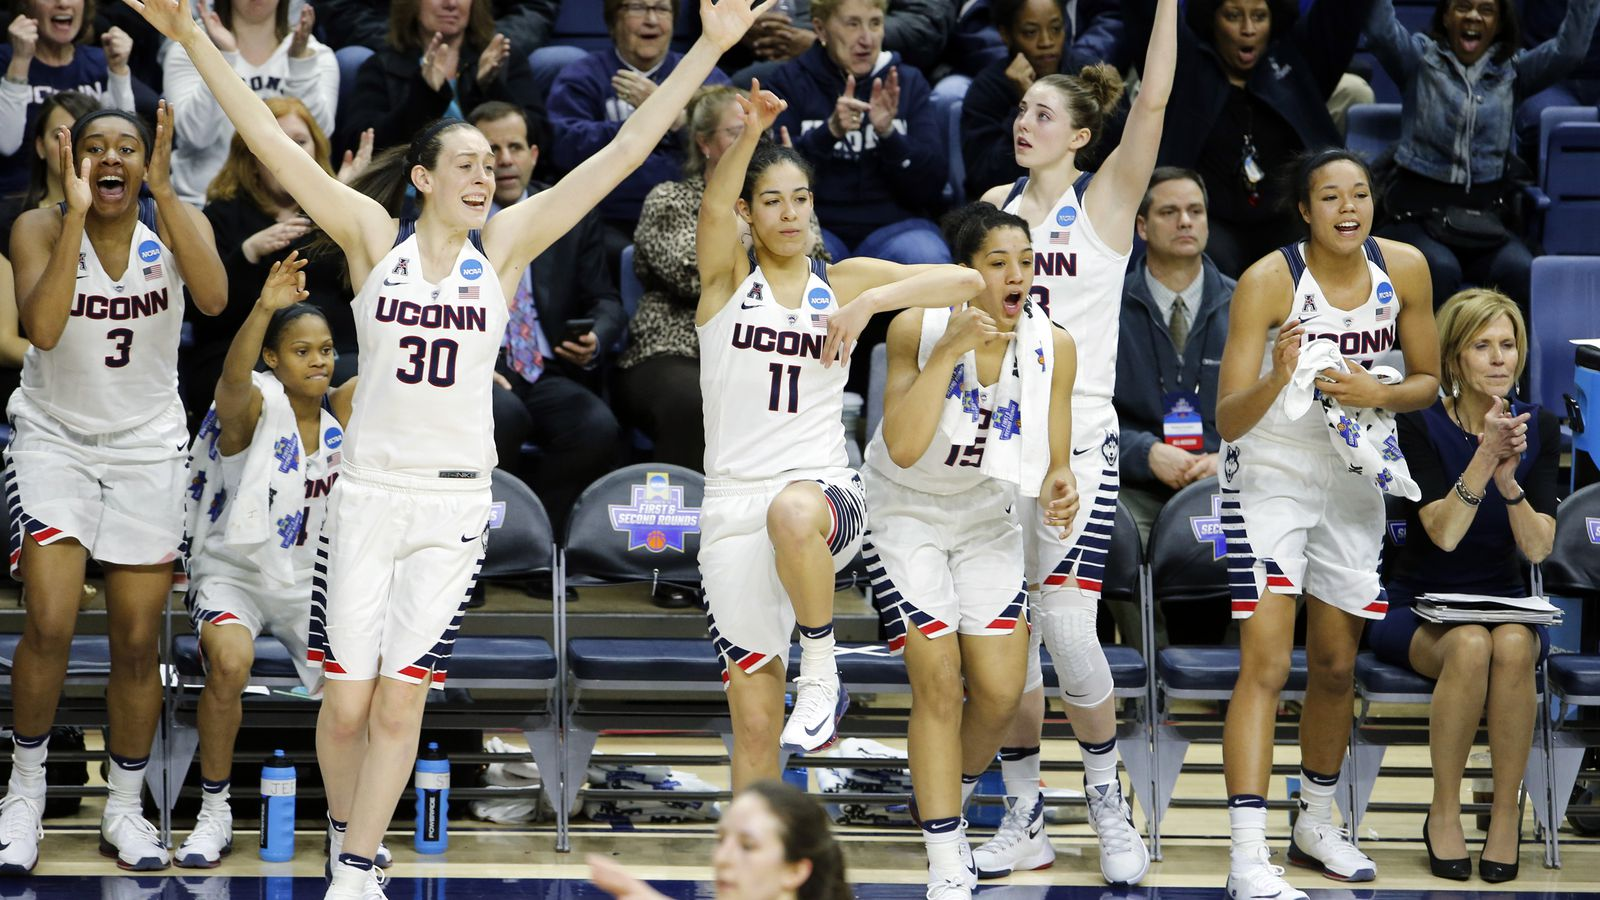 Saying UConn hurts women's basketball is misogyny ...